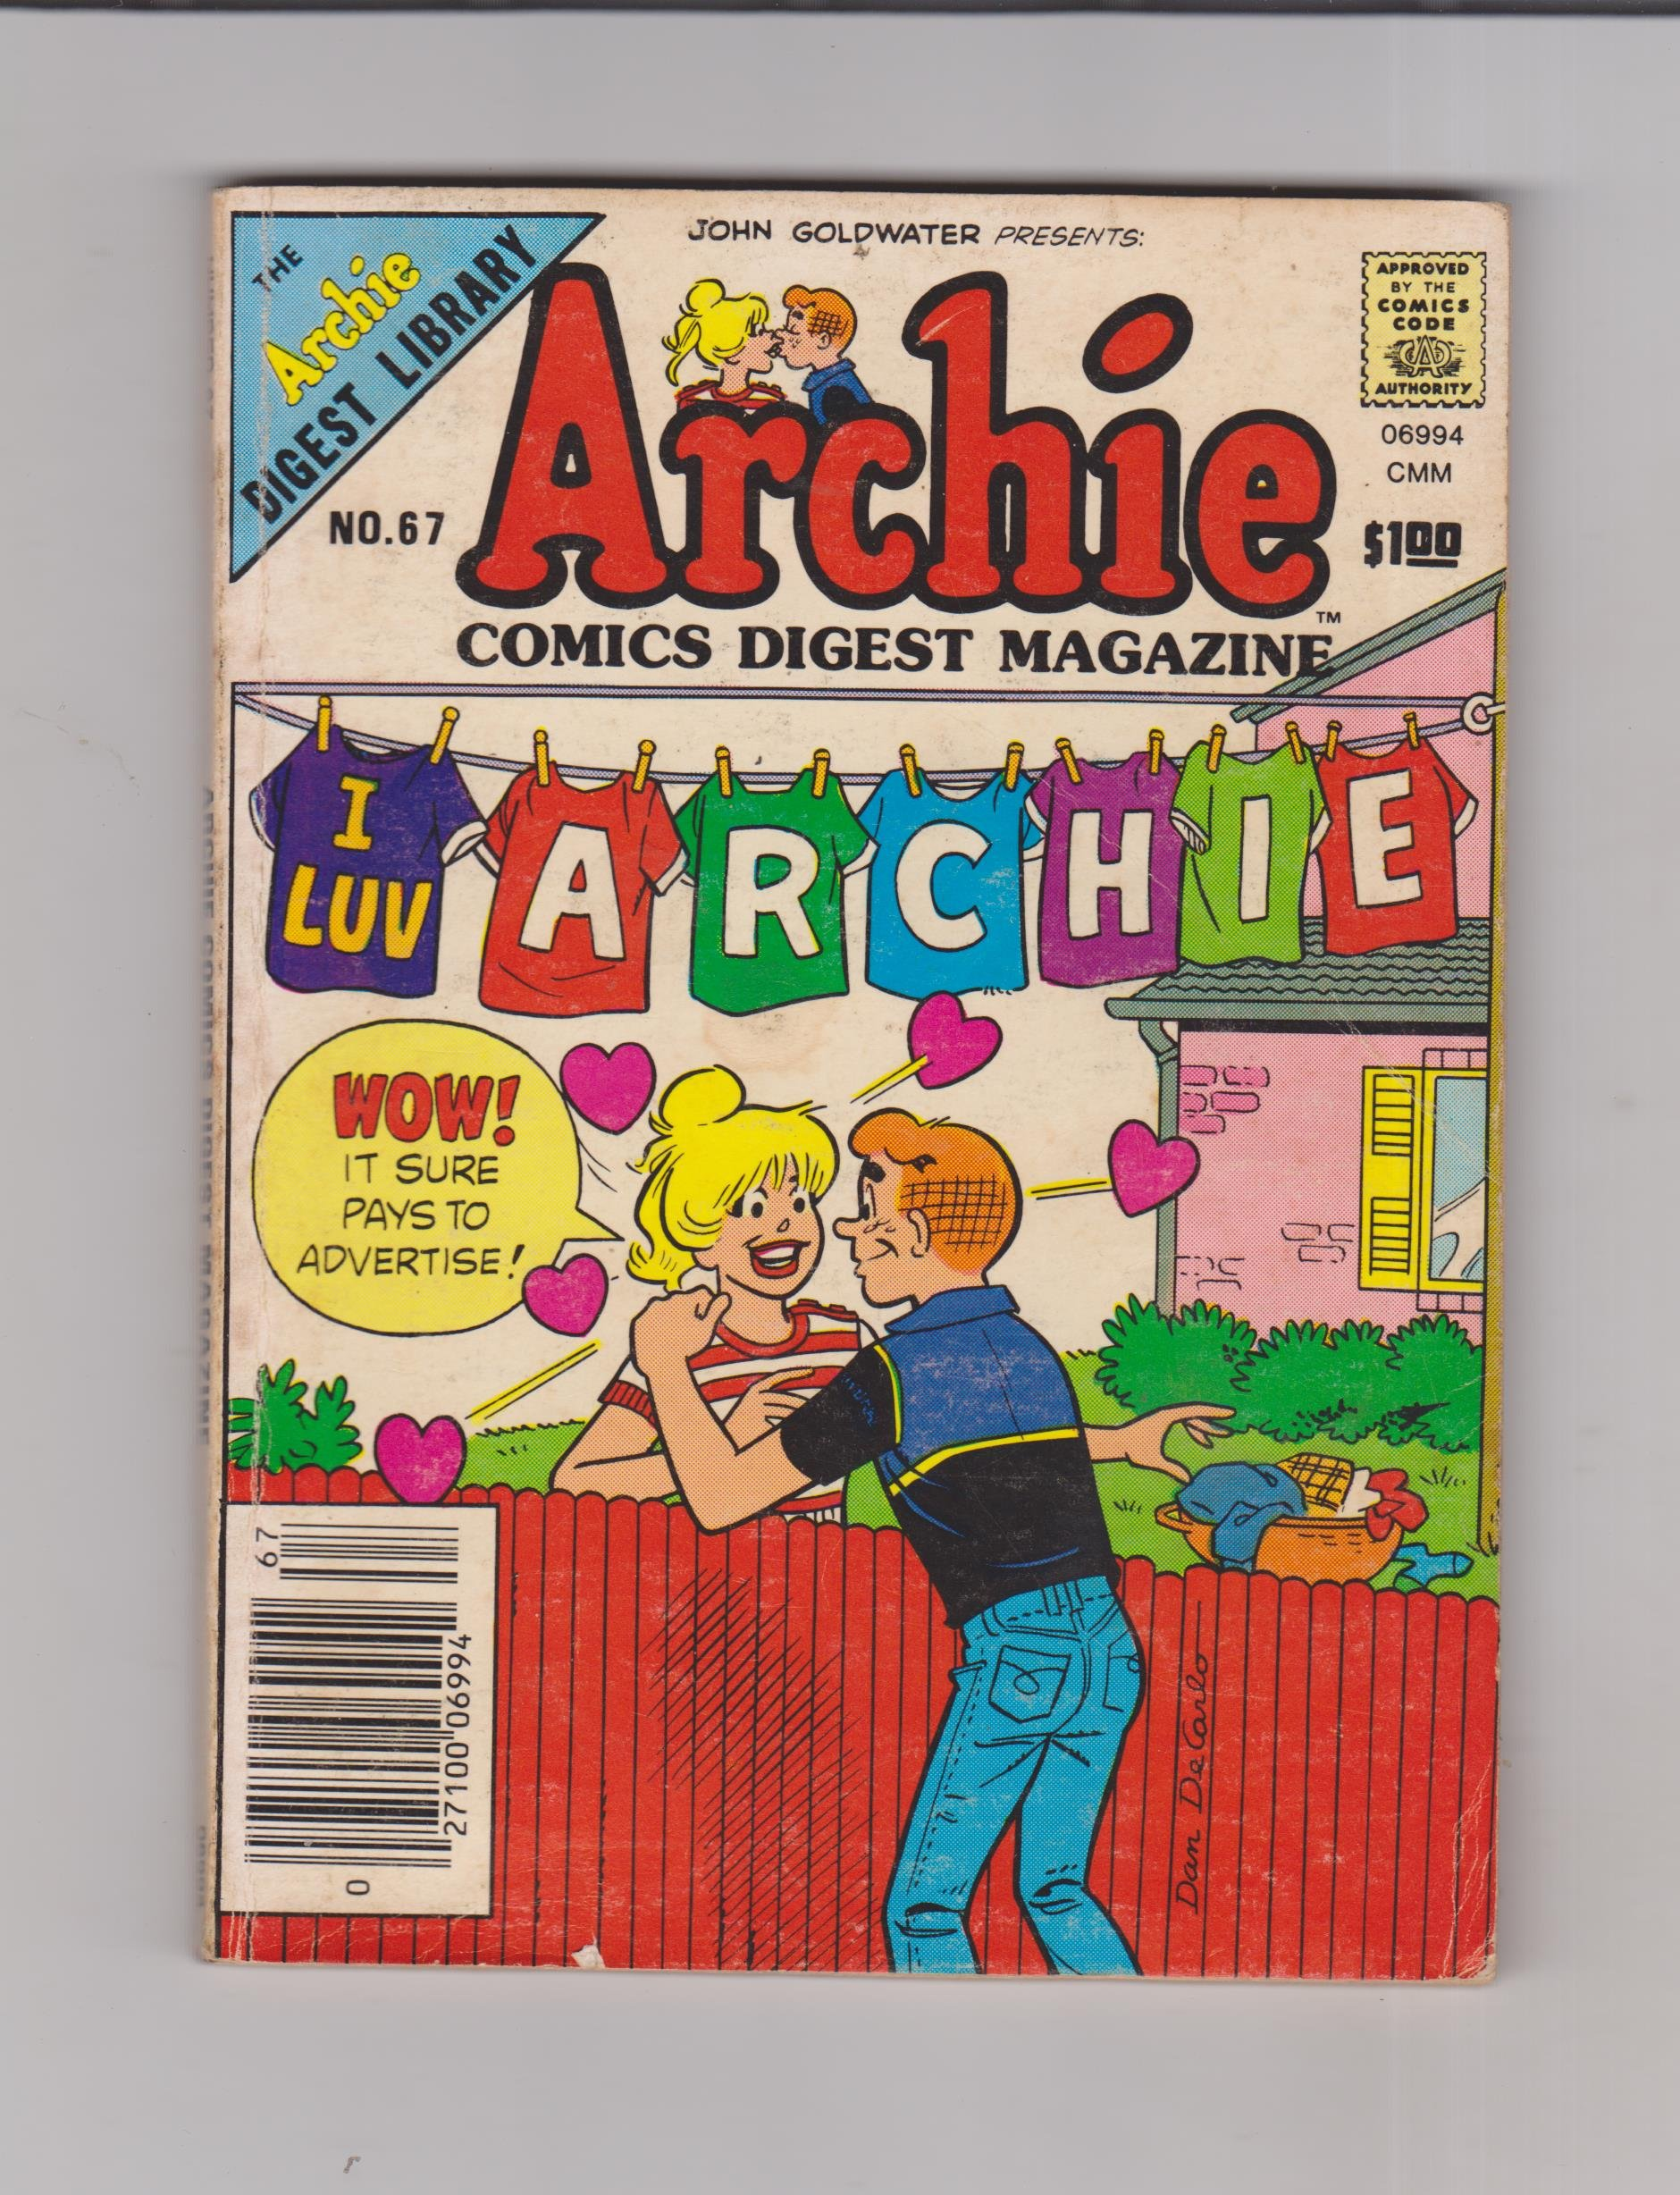 Archie Comics Digest Magazine No. 67